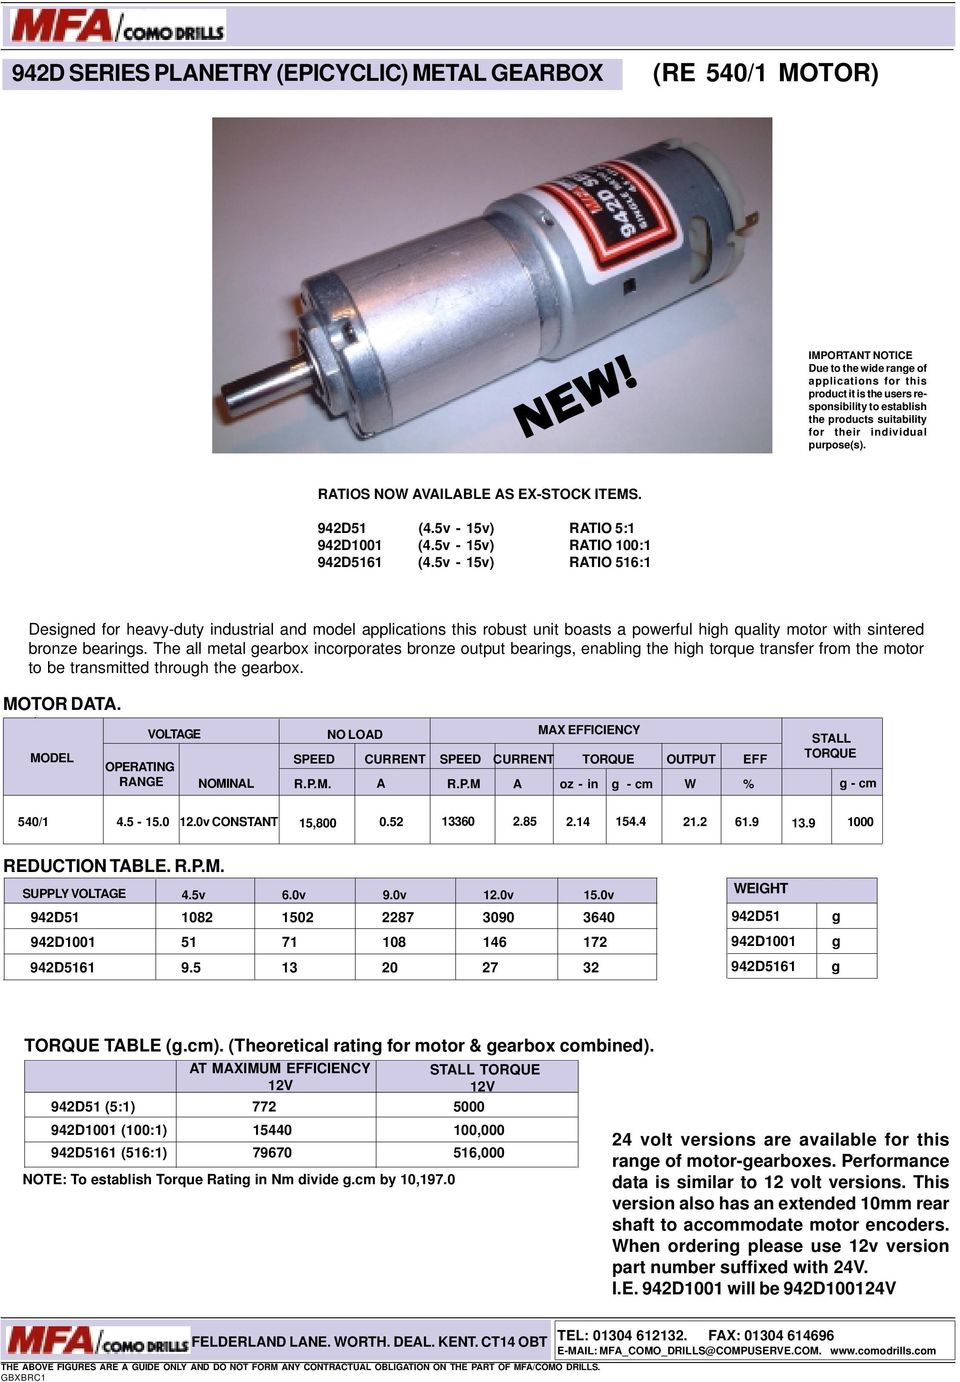 Low Voltage Dc Motors Gearbox Units Pdf Tarp Gear Motor 12 Volt Wiring Diagram Ratios Now Available As Ex Stock Items 942d51 45v 15v